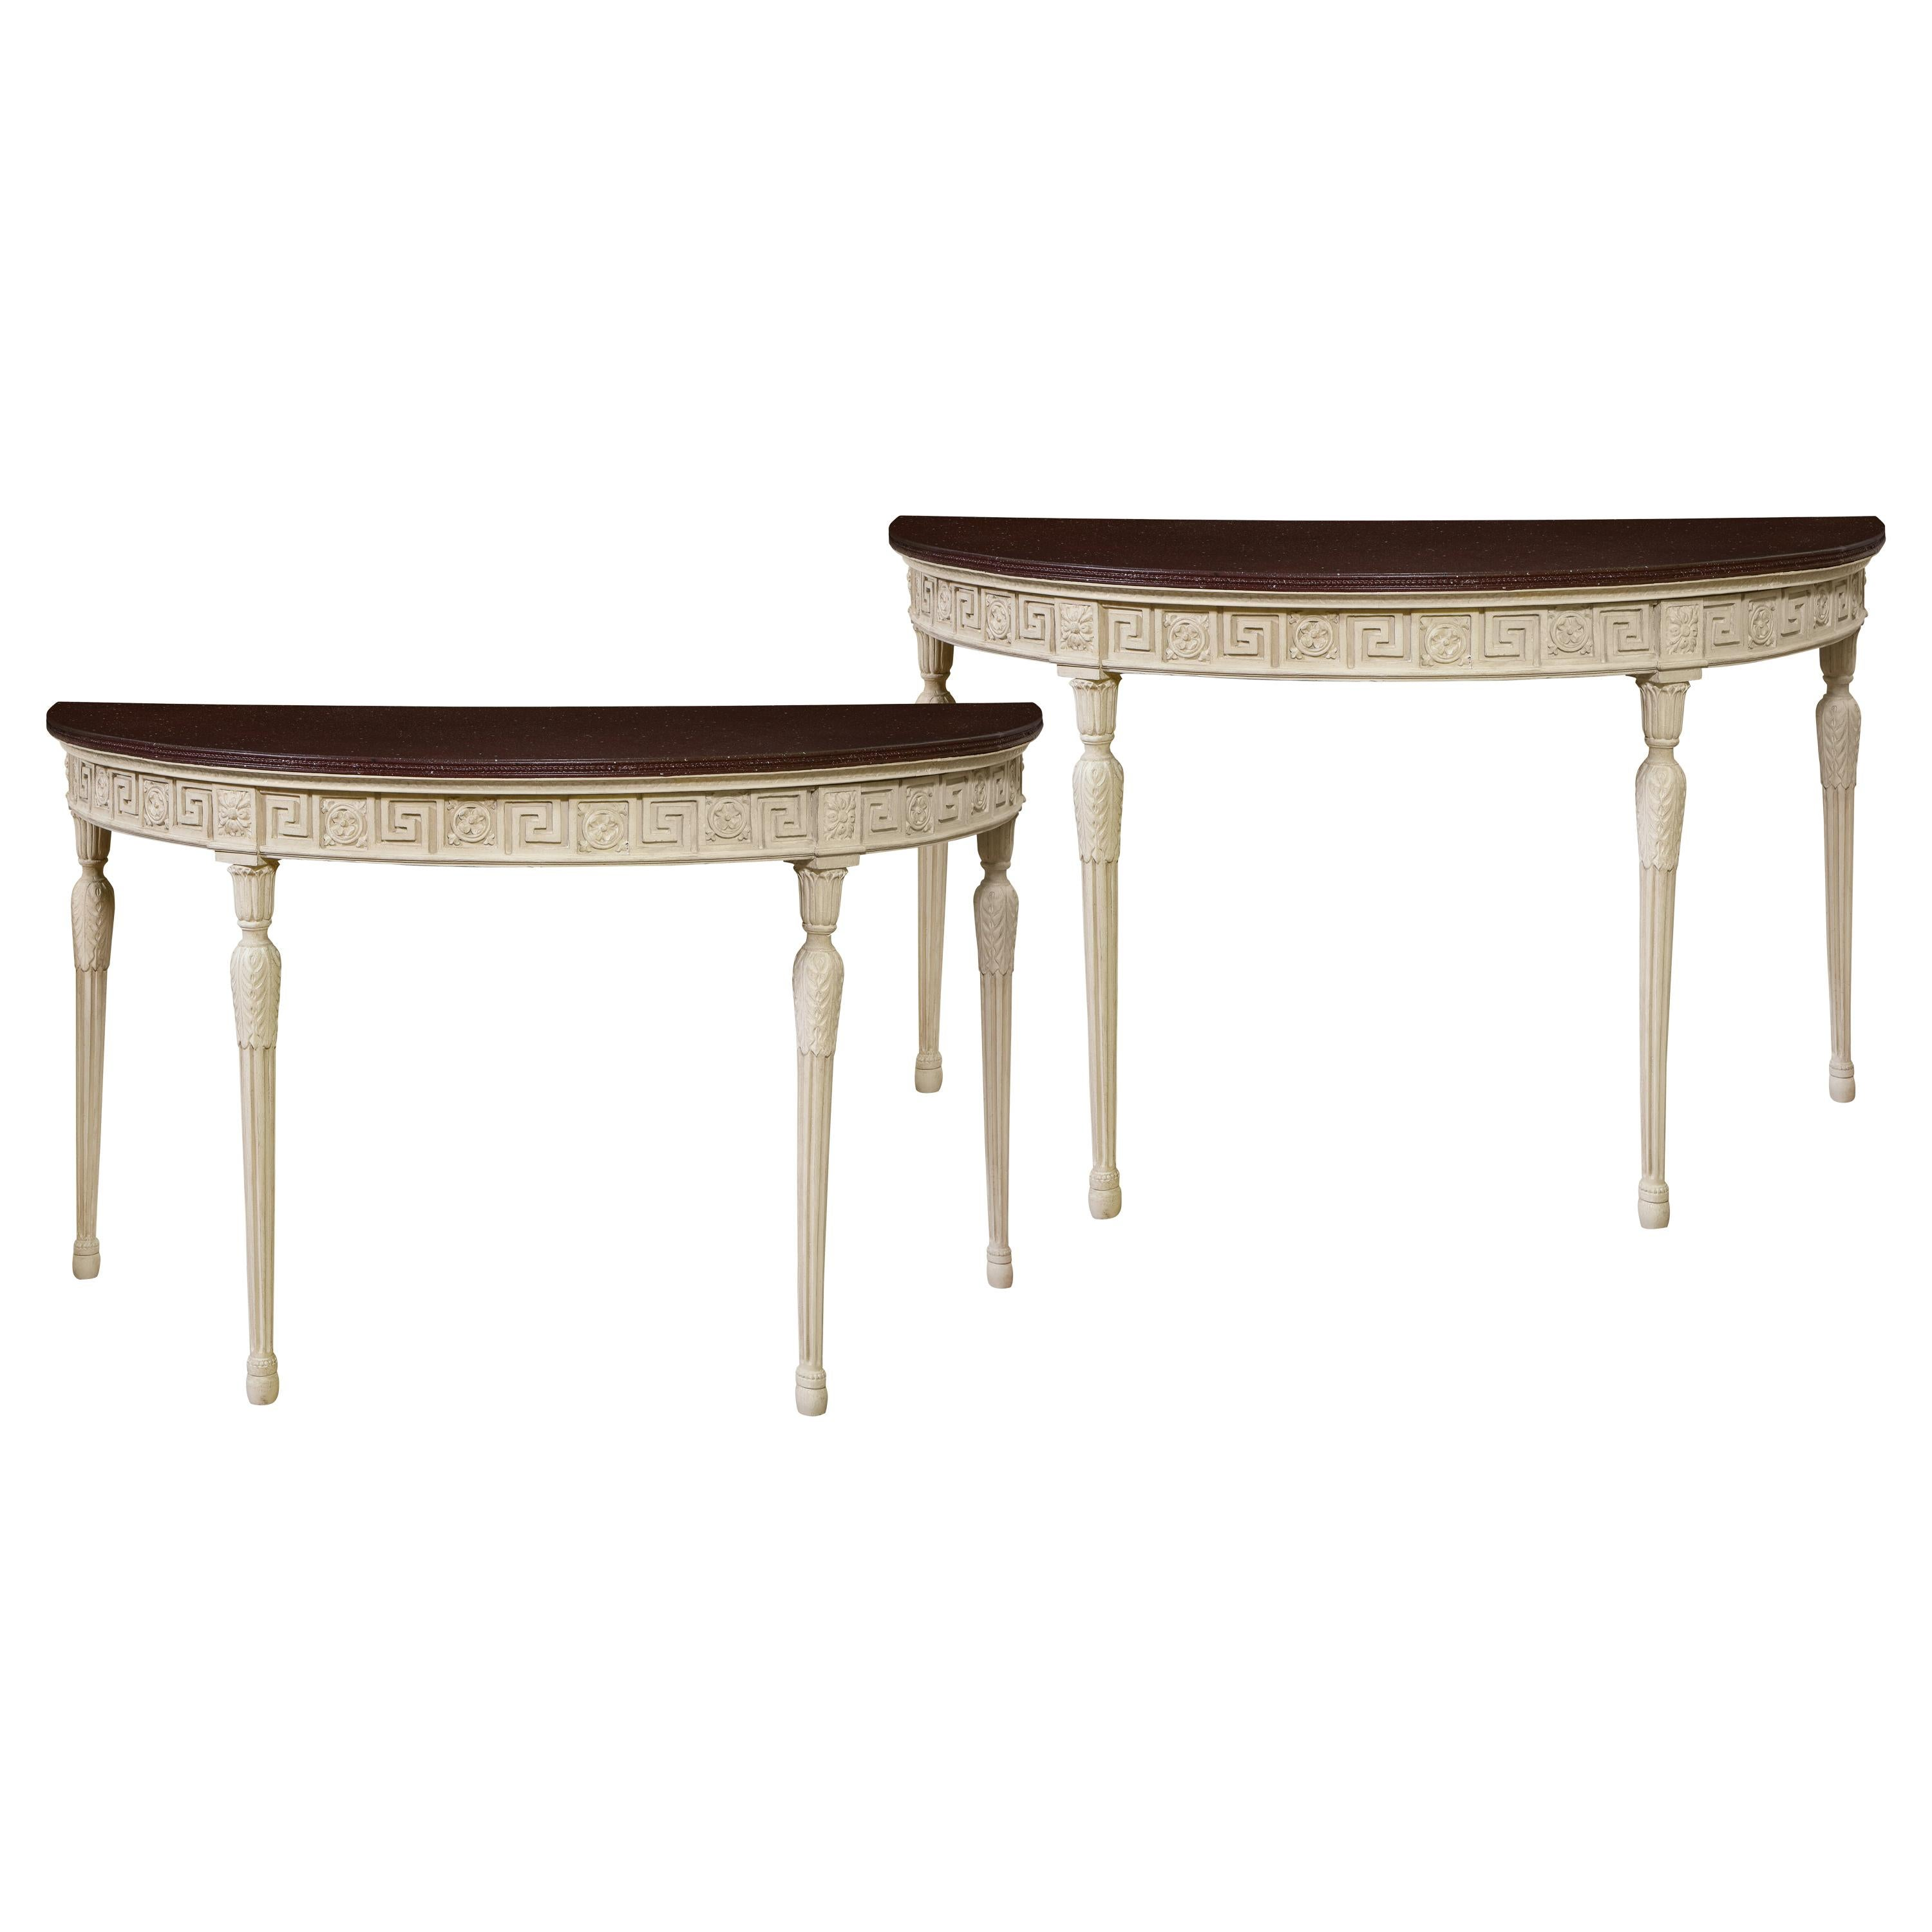 Pair of English Neoclassical Demi-Lune Console Tables